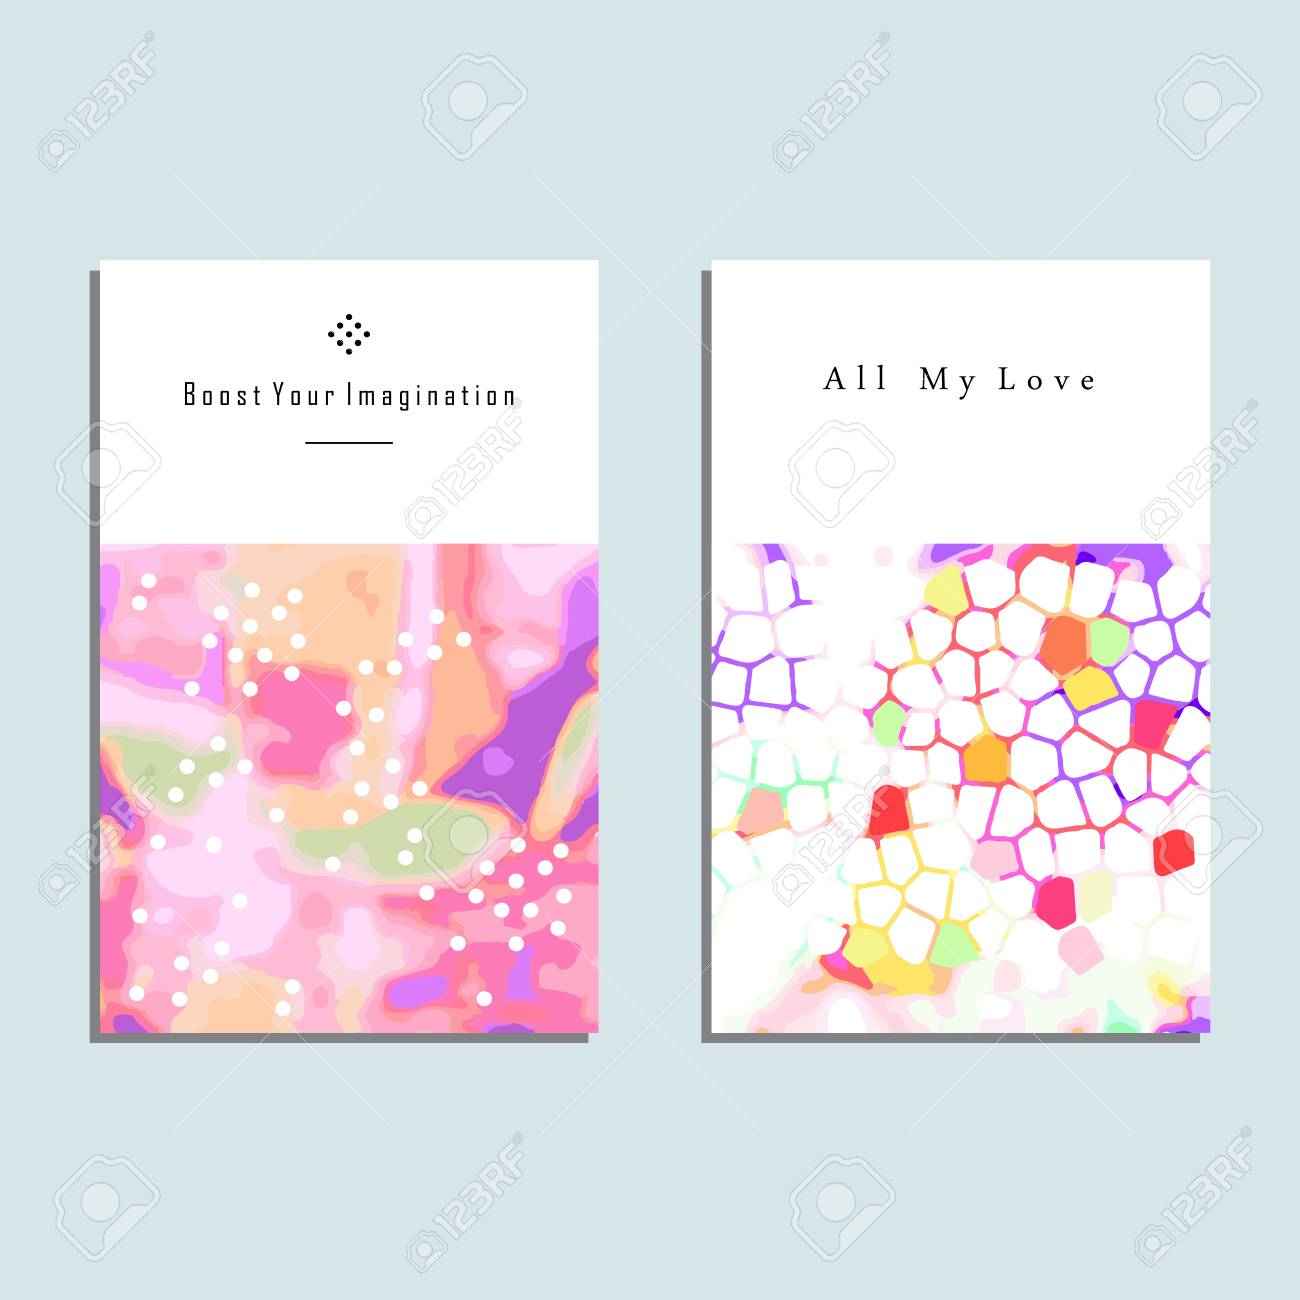 Set of artistic vector greeting cards design colorful frame pattern set of artistic vector greeting cards design colorful frame pattern textures for wedding anniversary kristyandbryce Images